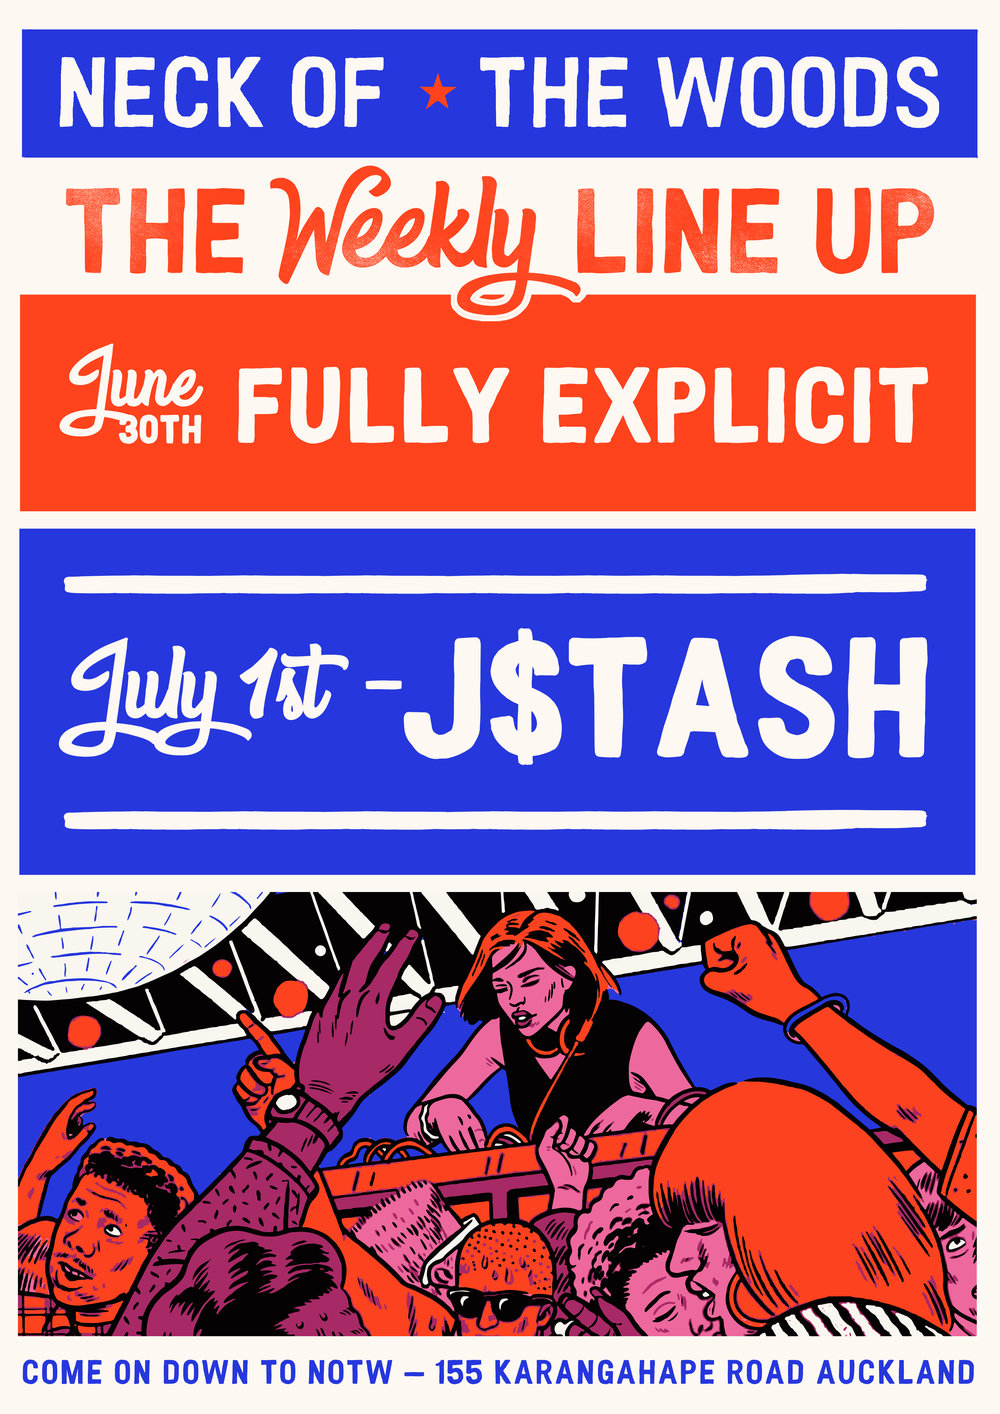 NOTW - WEEKLY LINE UP JUNE 30TH.jpg